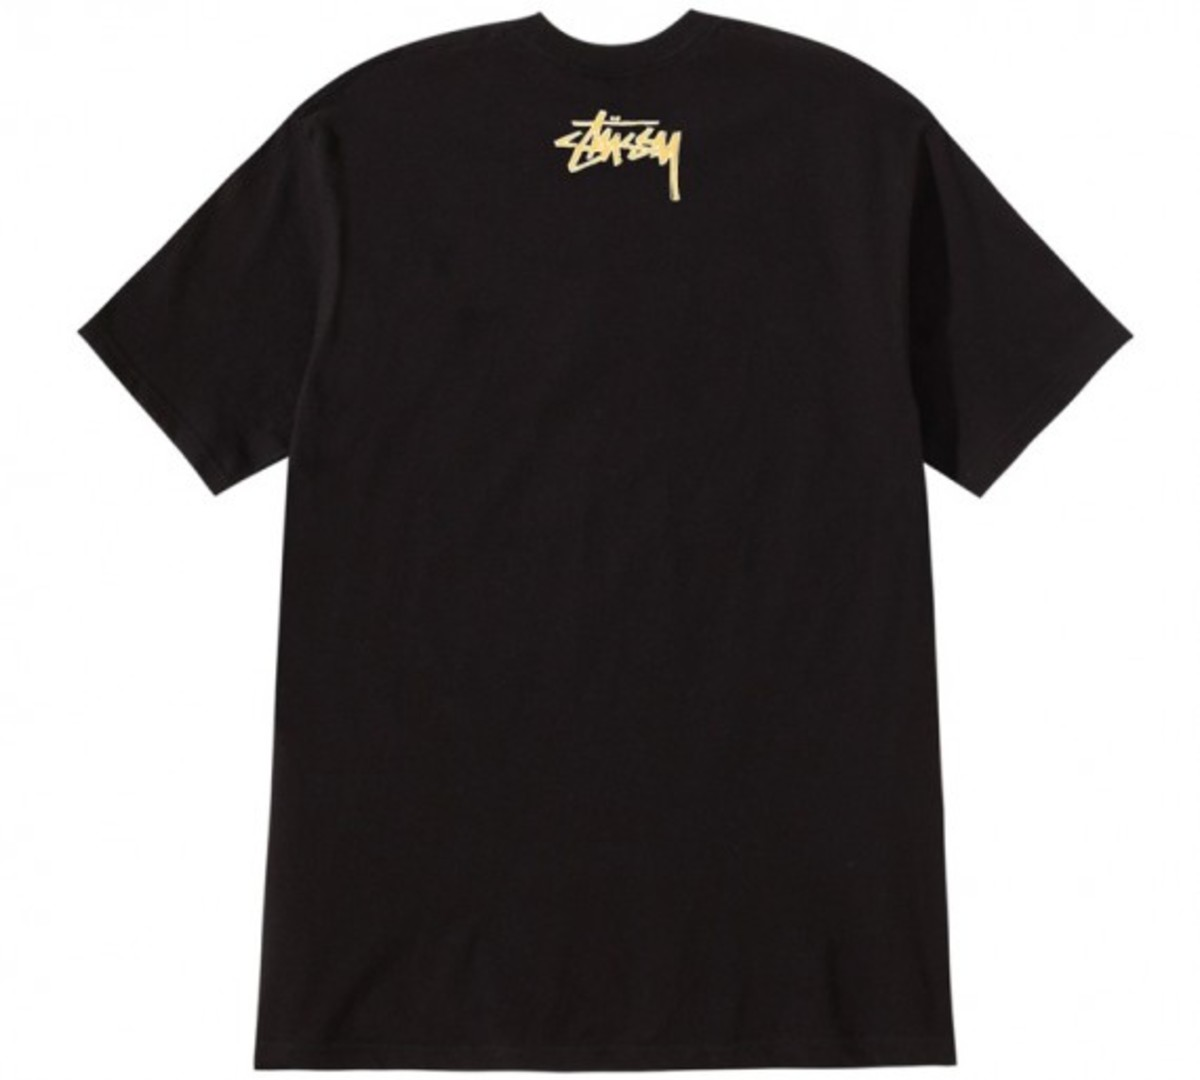 stussy-ed-banger-cool-cats-series-02